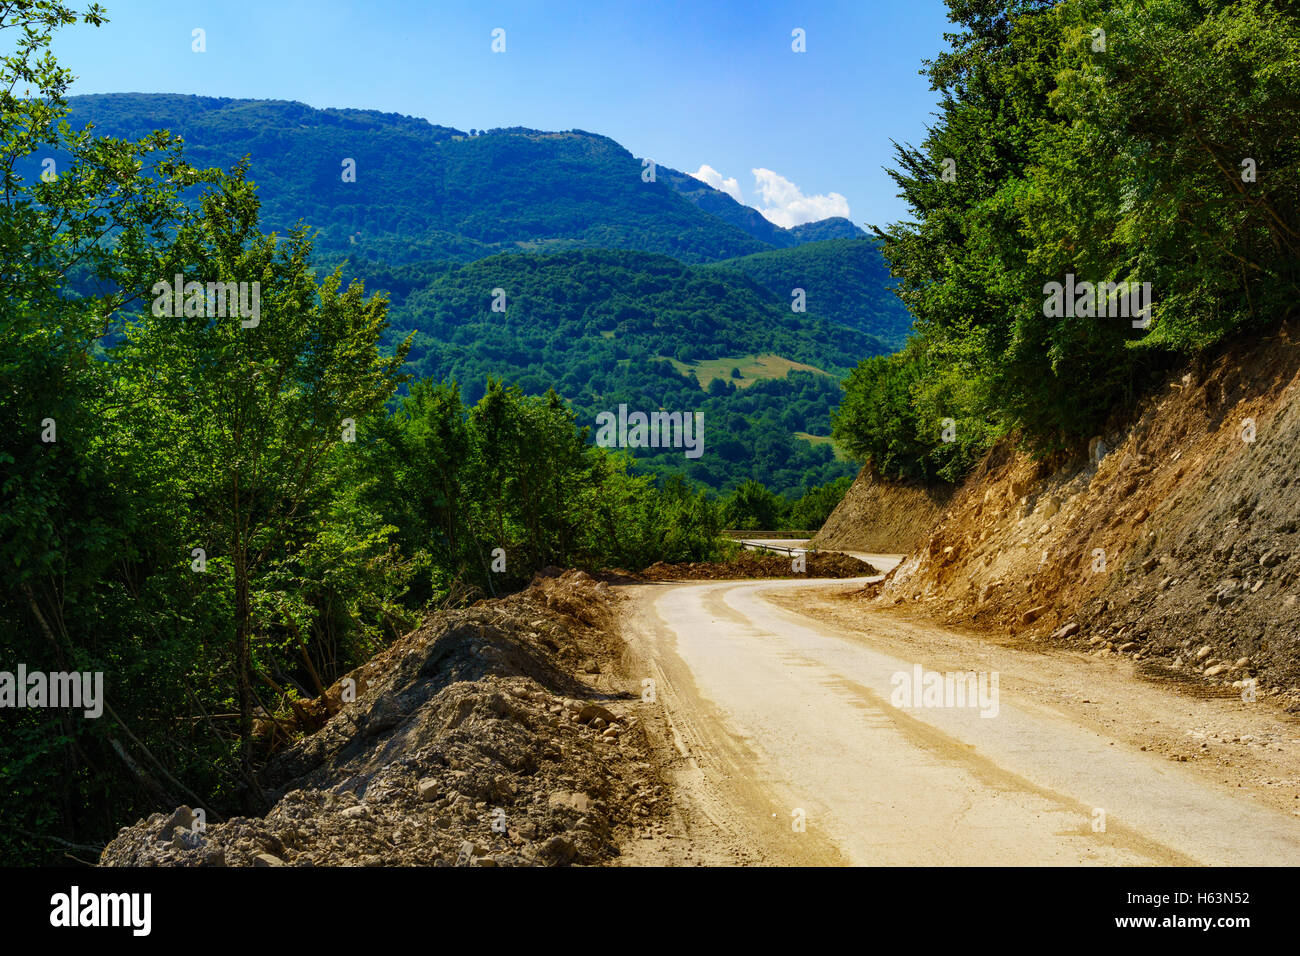 View and landscape along the M18 road in the Republika Srpska, Bosnia and Herzegovina - Stock Image